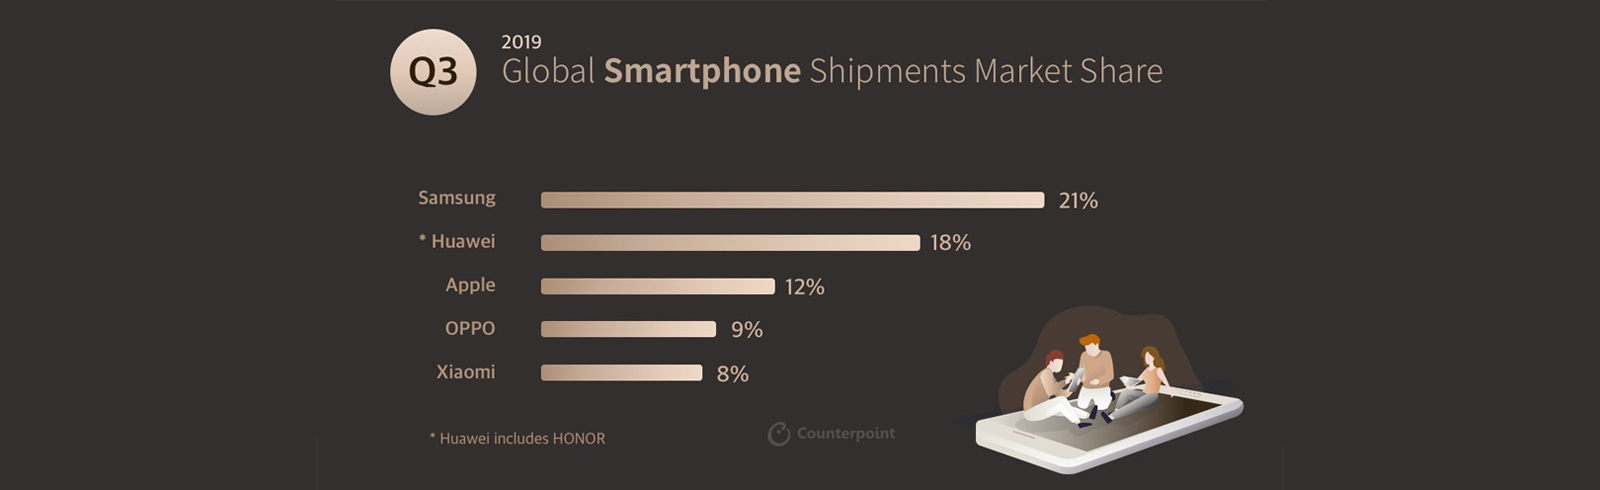 Global and local smartphone market leaders for Q3 2019